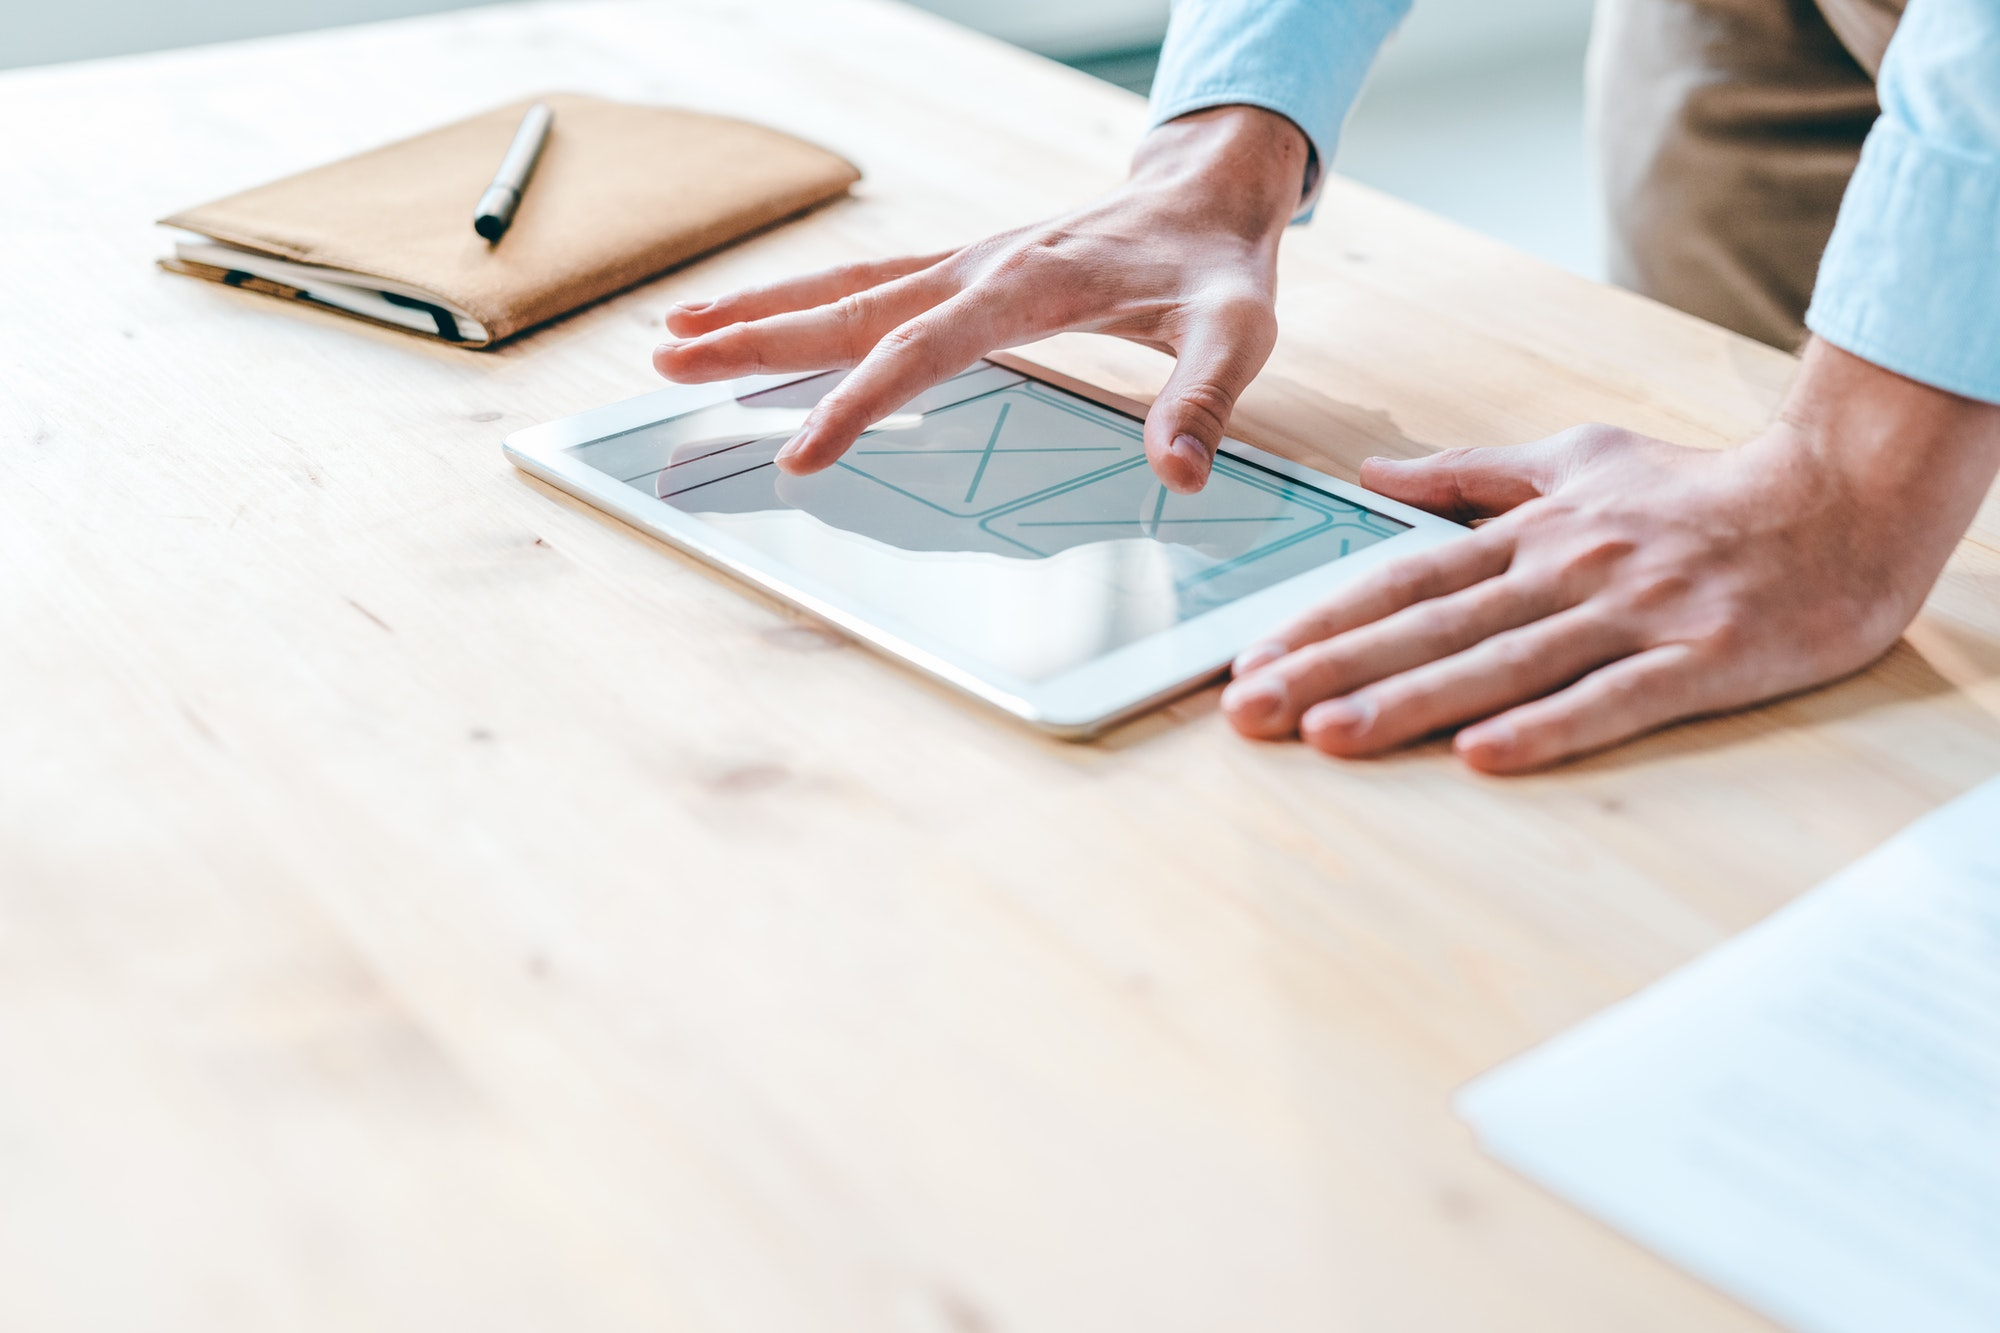 Young contemporary webdesigner pointing at application design on touchpad screen